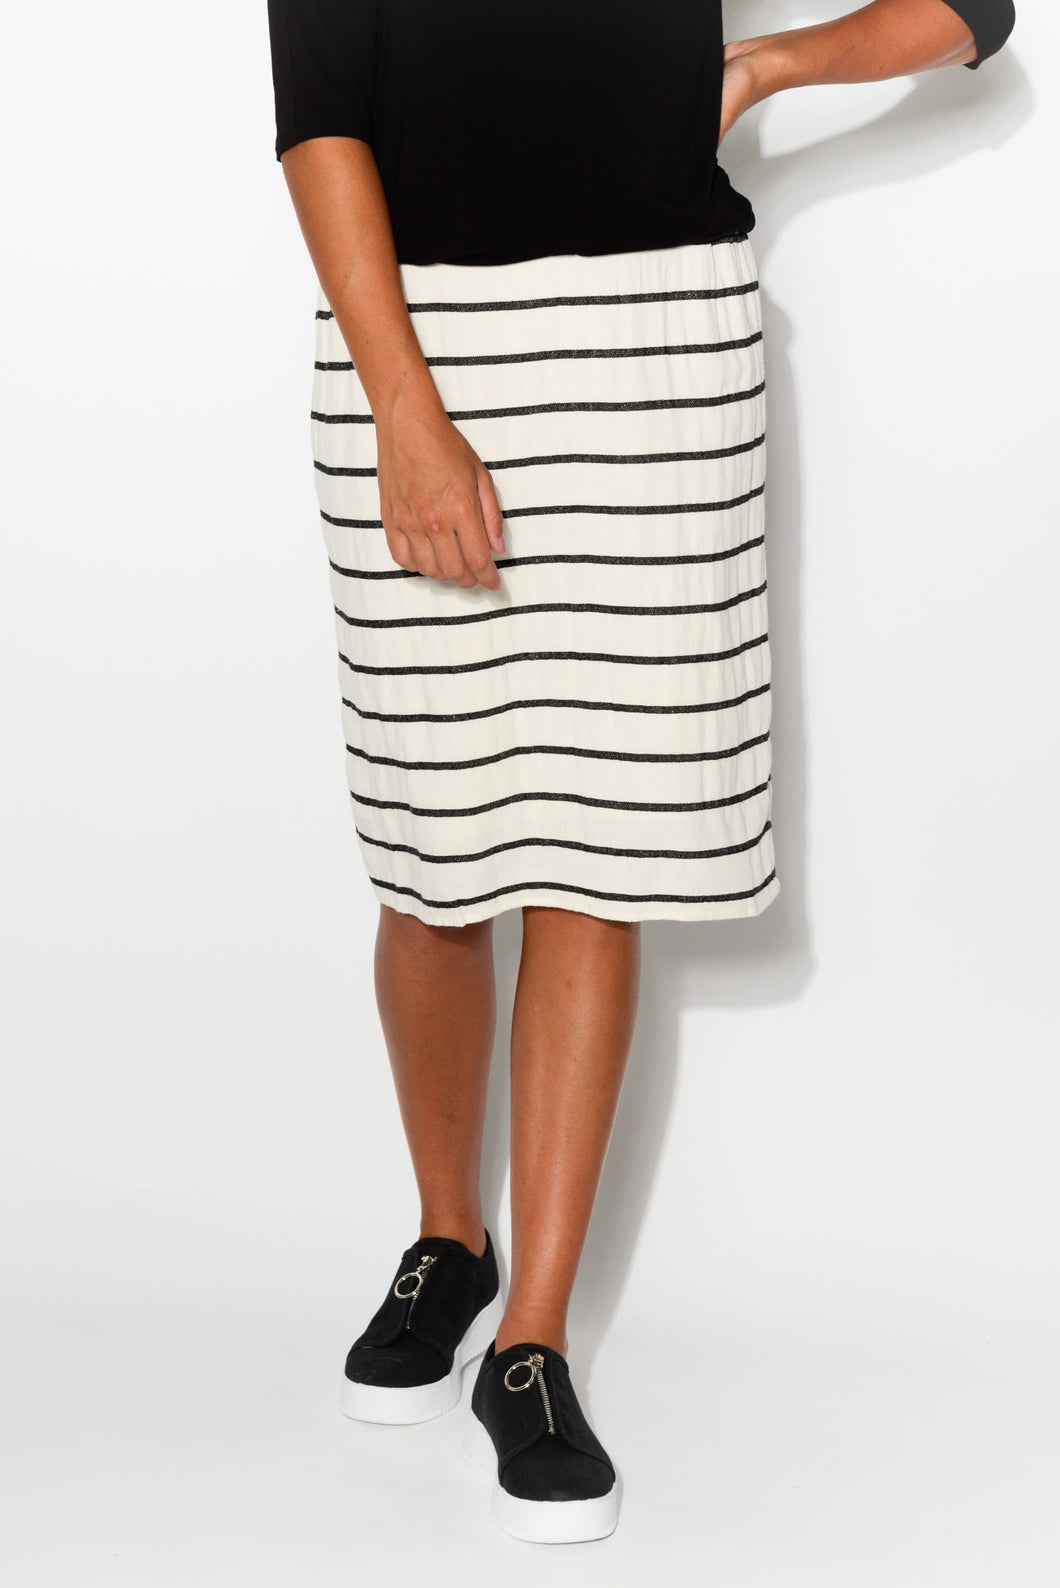 Venice White Stripe Linen Cotton Skirt - Blue Bungalow